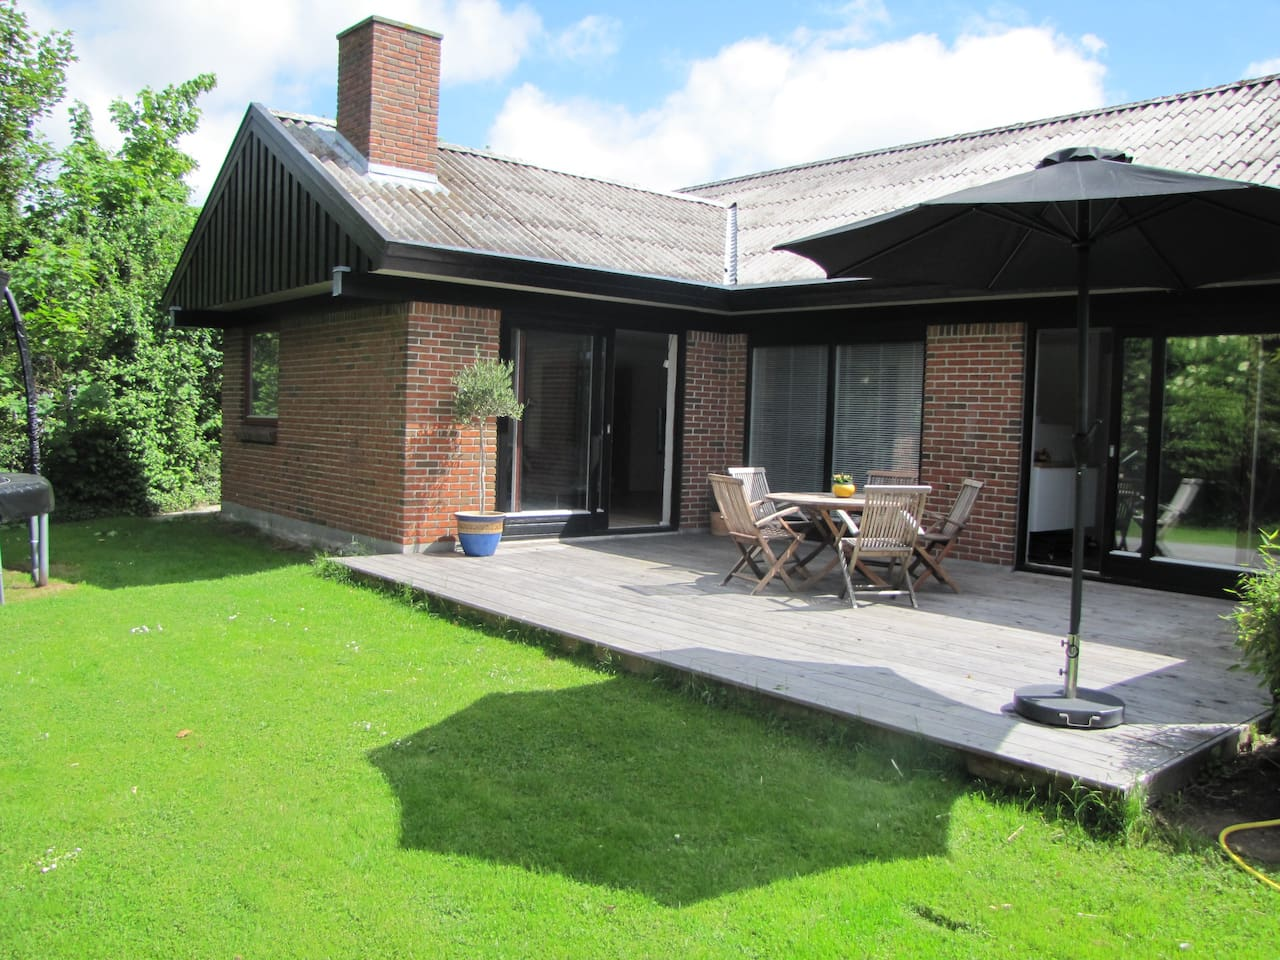 Nice terrace with garden furniture and grill